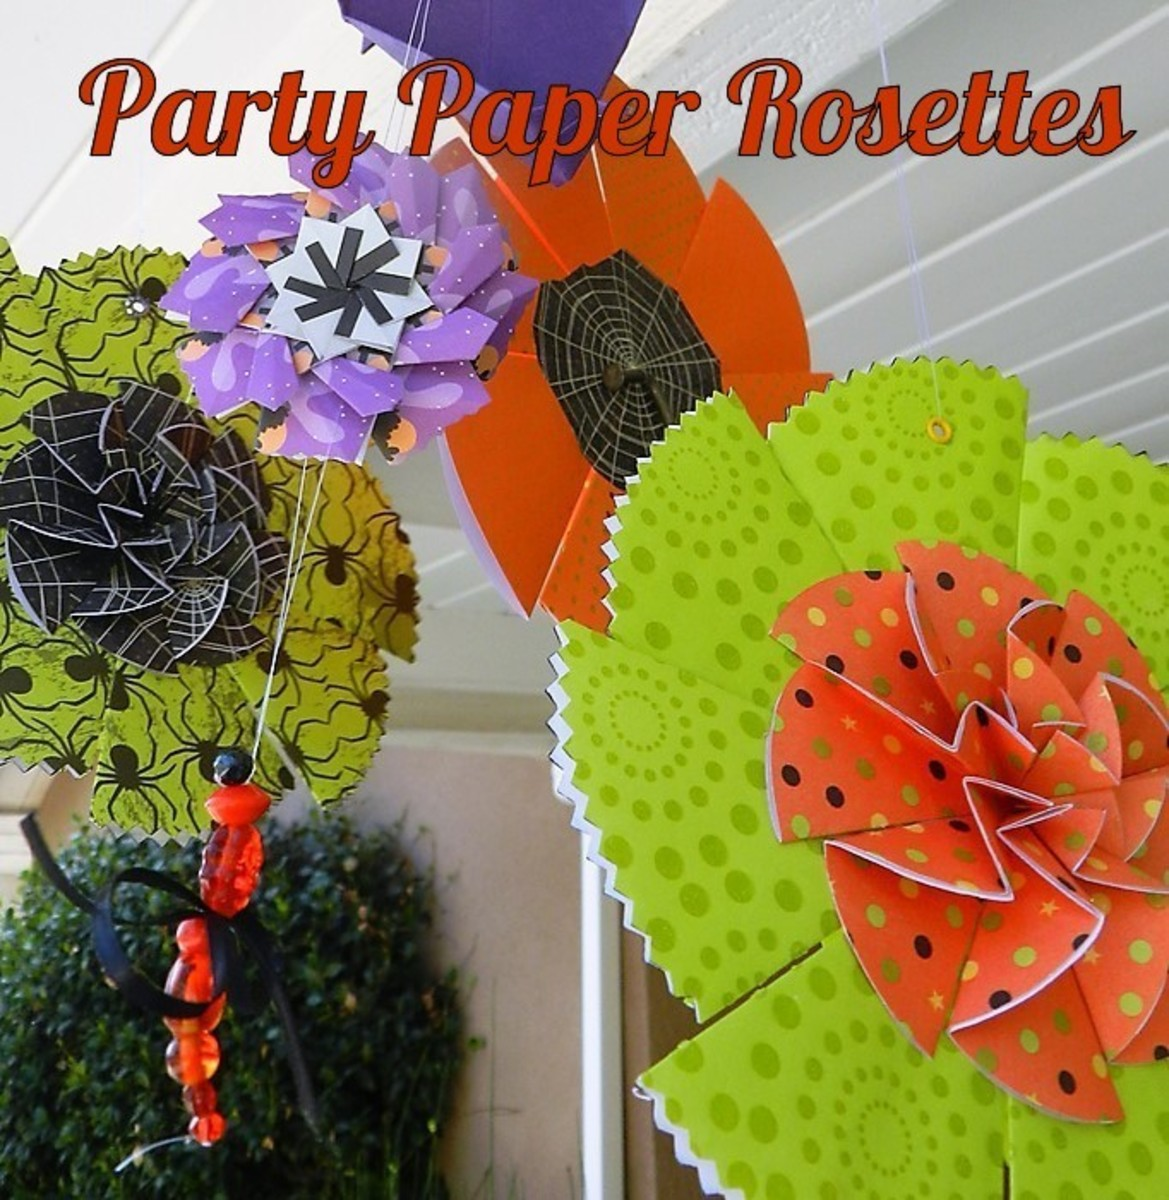 How to Make Paper Rosettes for Party Decor